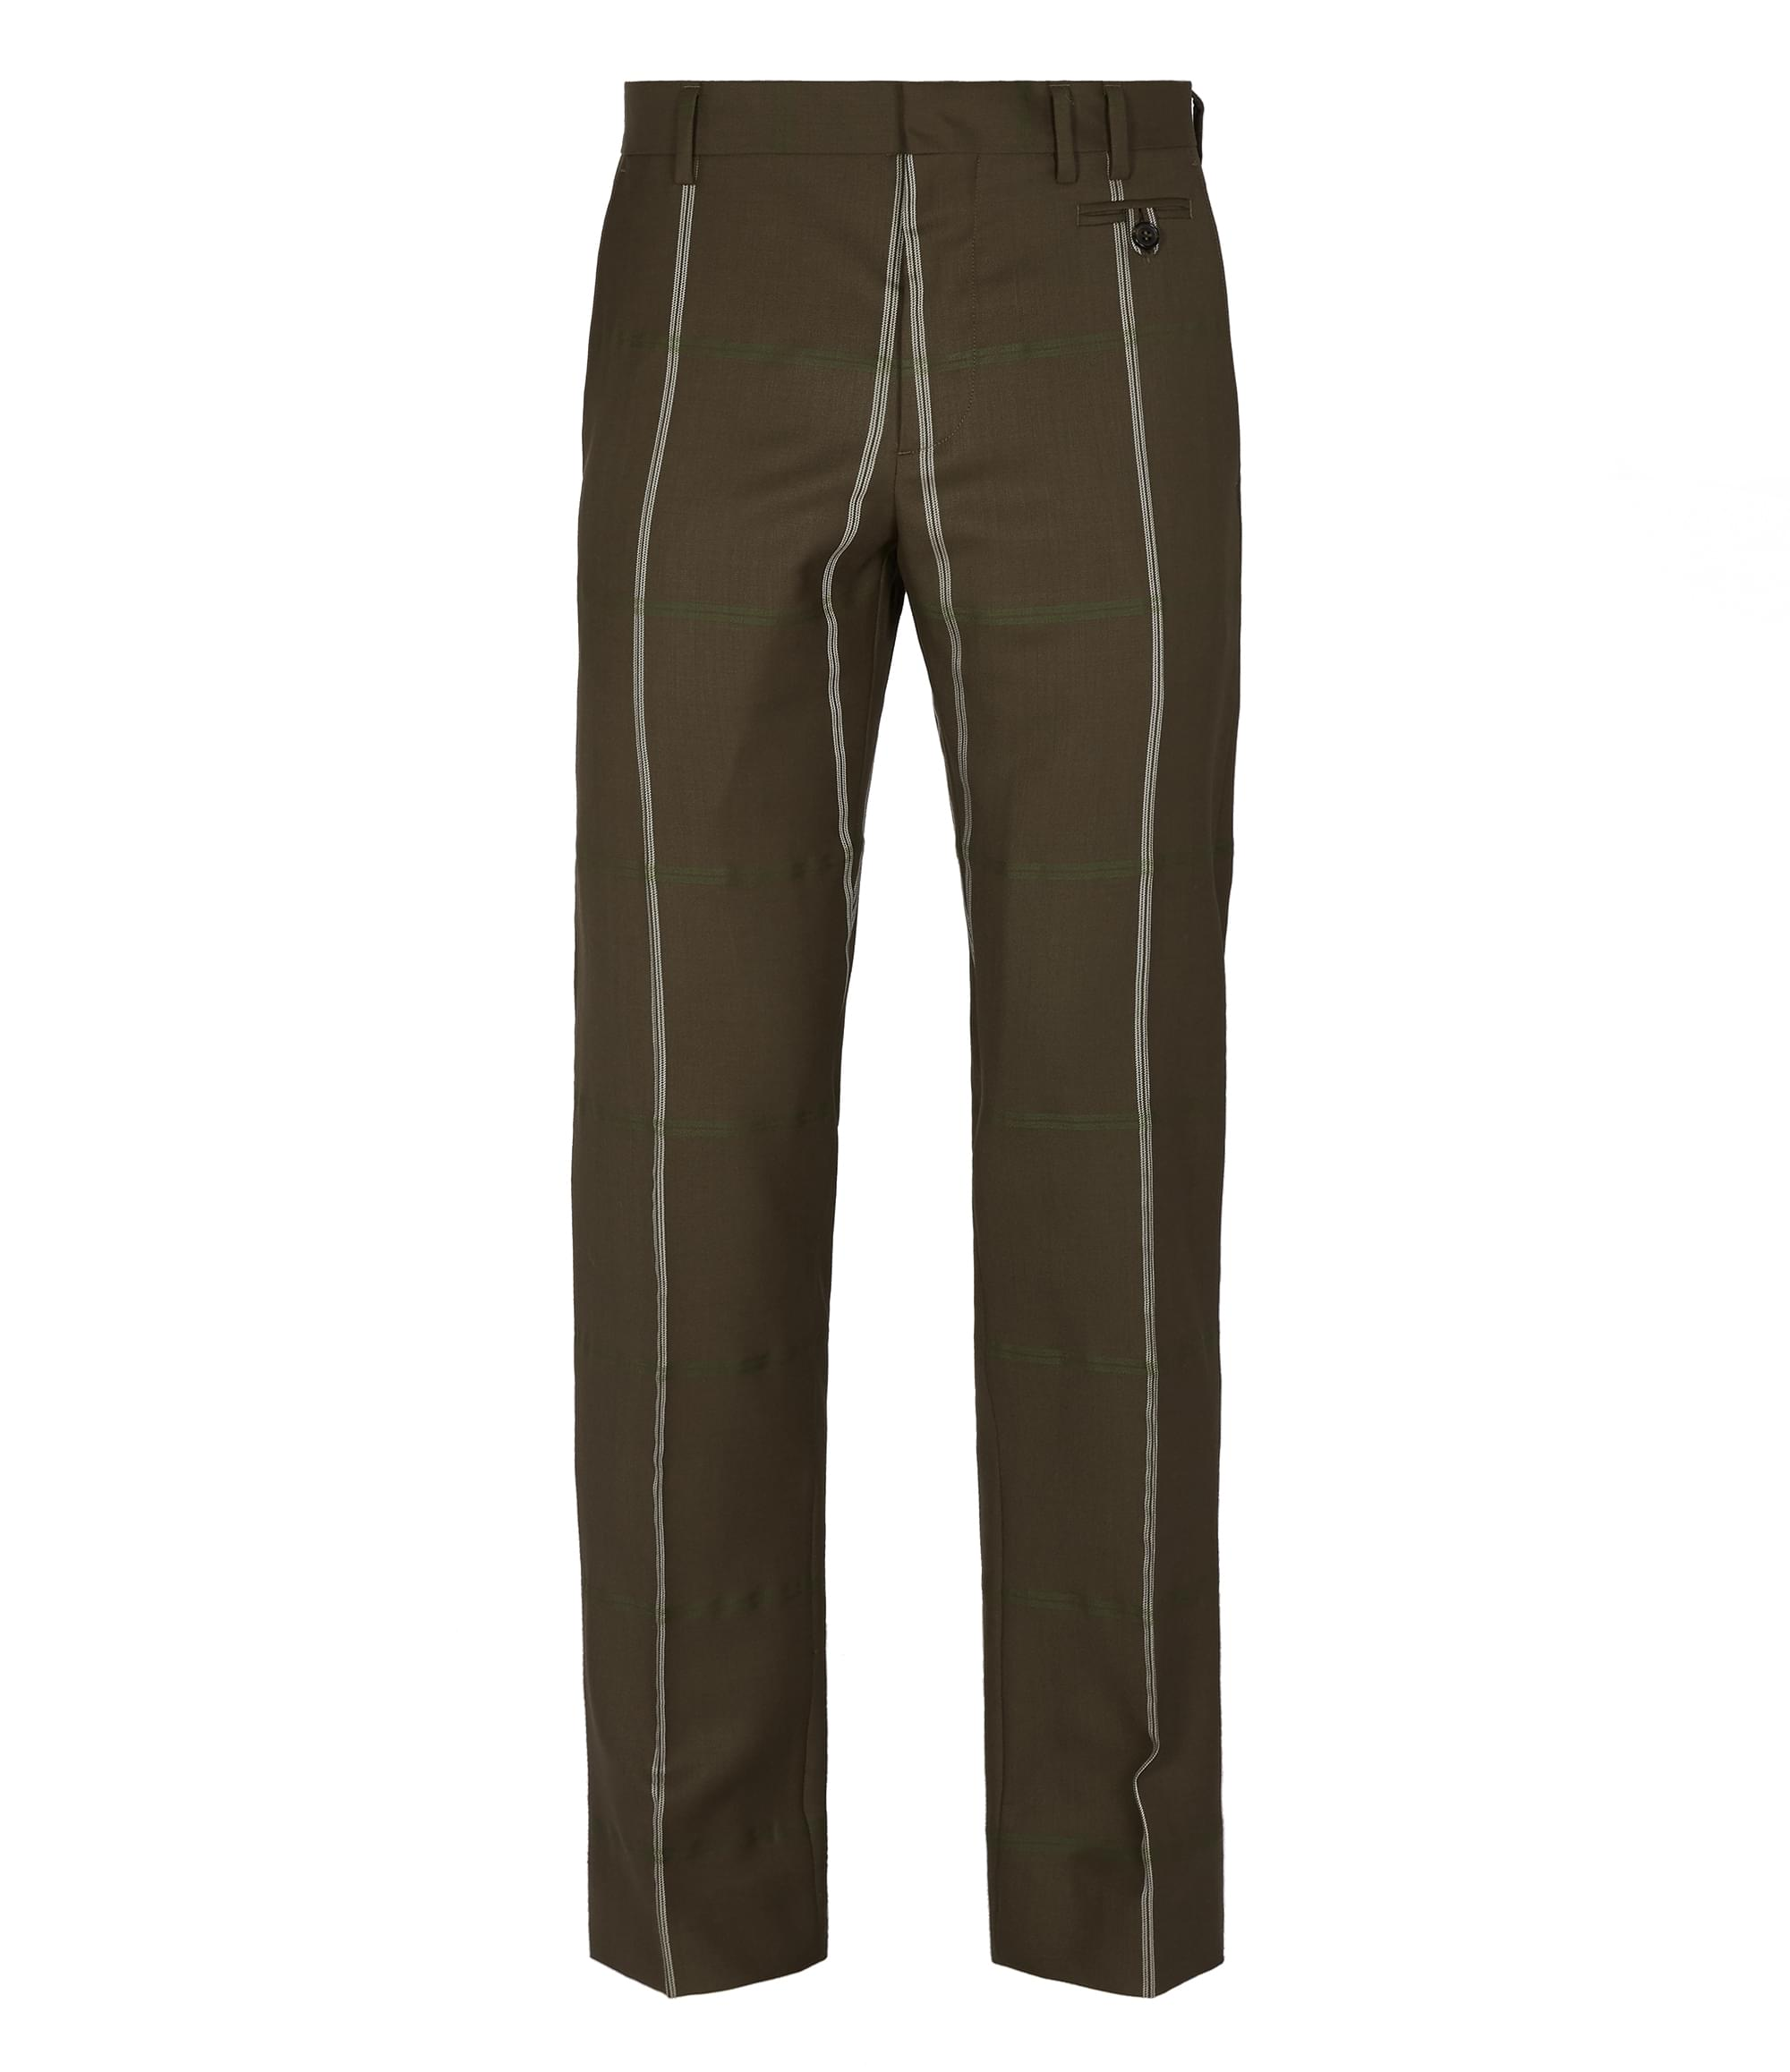 Vivienne Westwood Classic Wool Trousers Brown Check